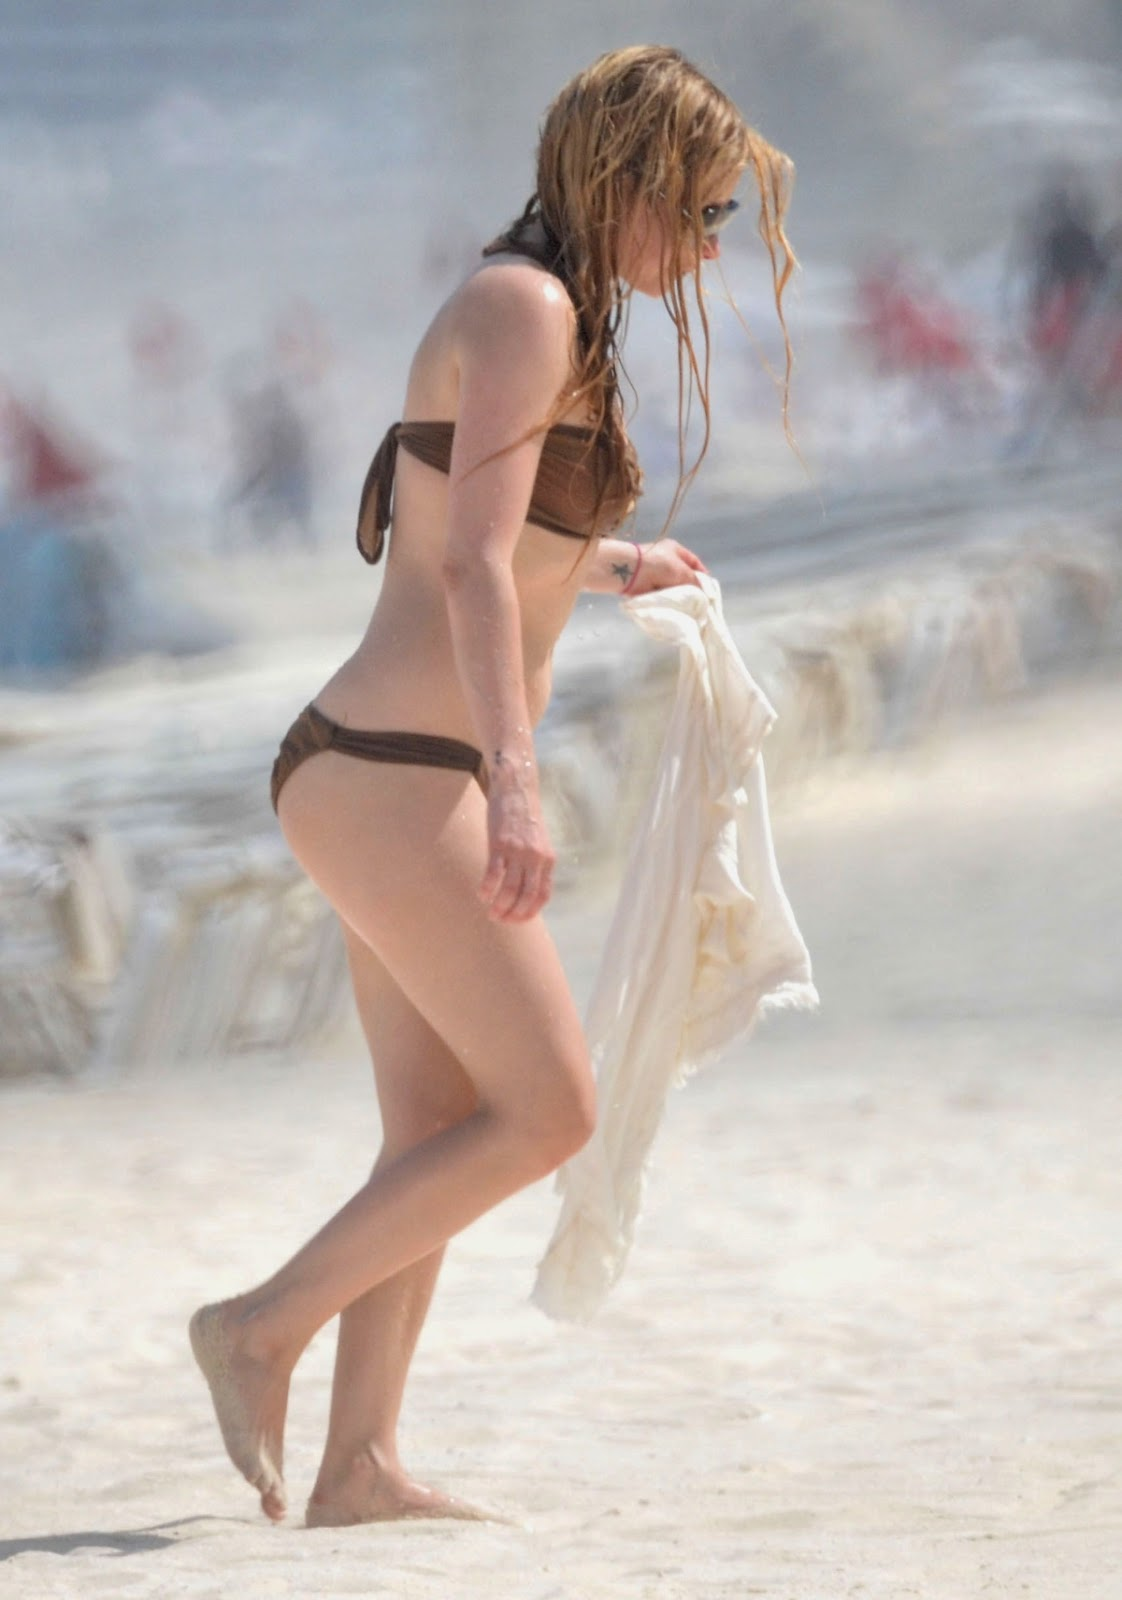 Avril Lavigne - Hot Bikini Candids in Mexico Beach photos